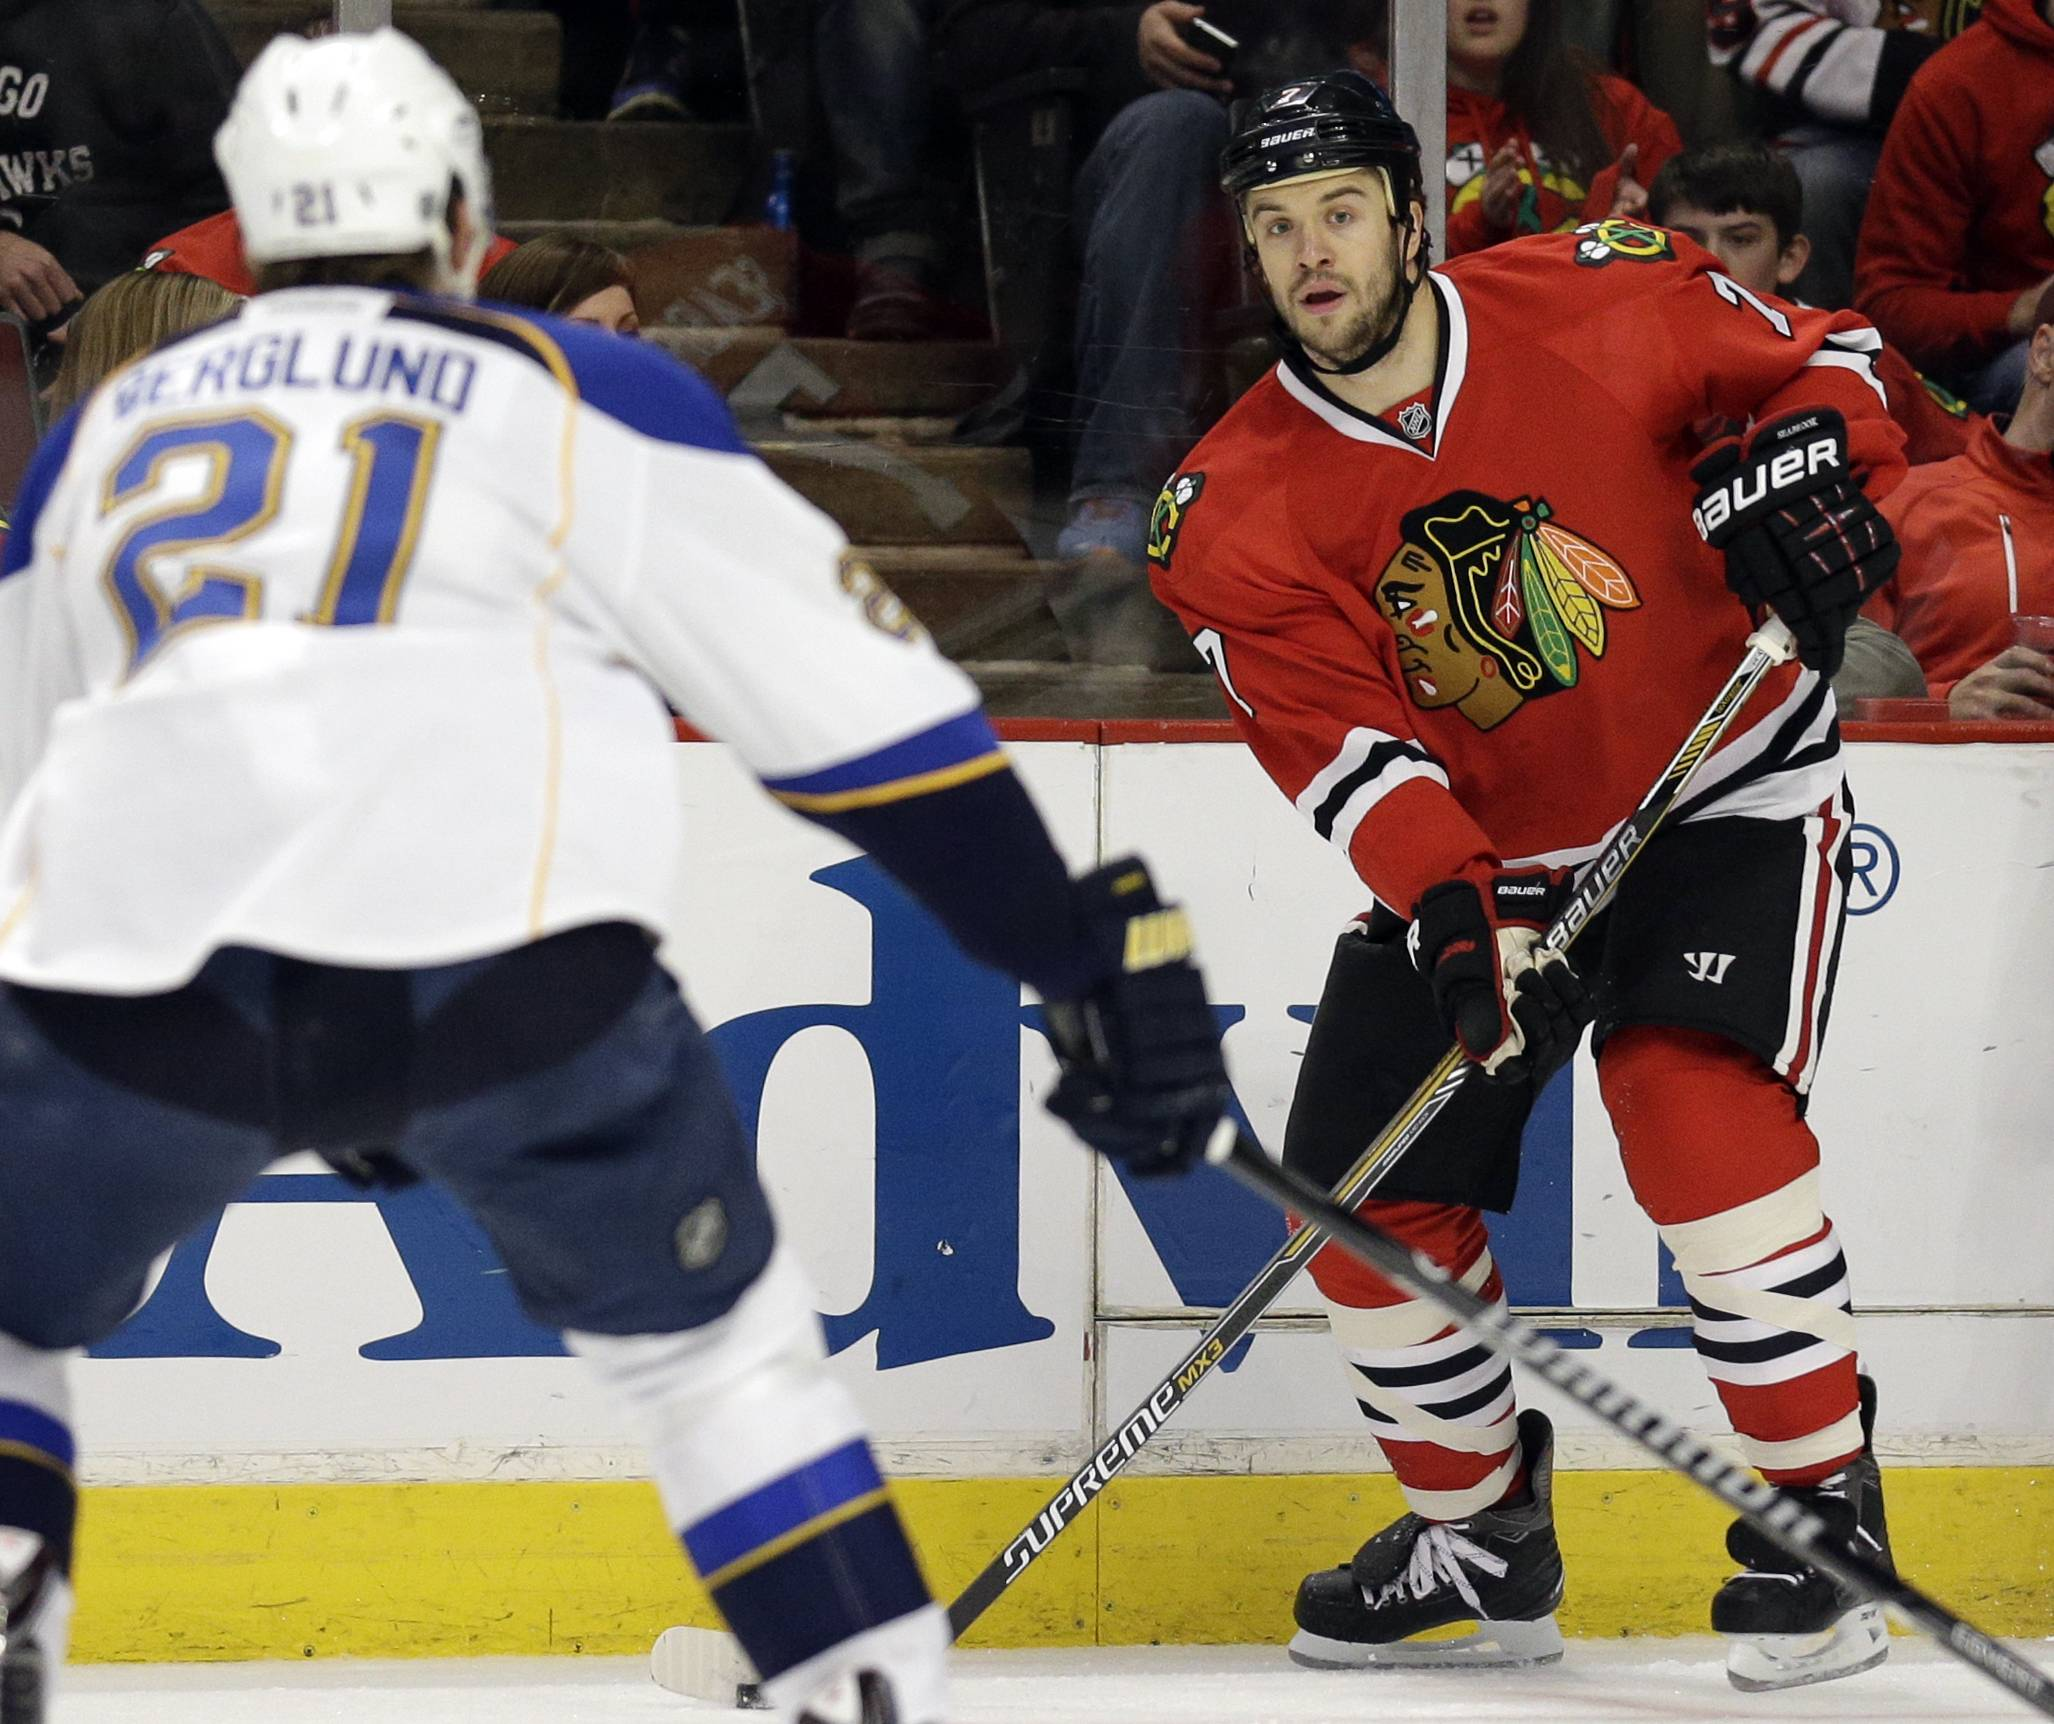 Chicago Blackhawks' Brent Seabrook, right, looks to a pass against St. Louis Blues' Patrik Berglund (21) during the first period.